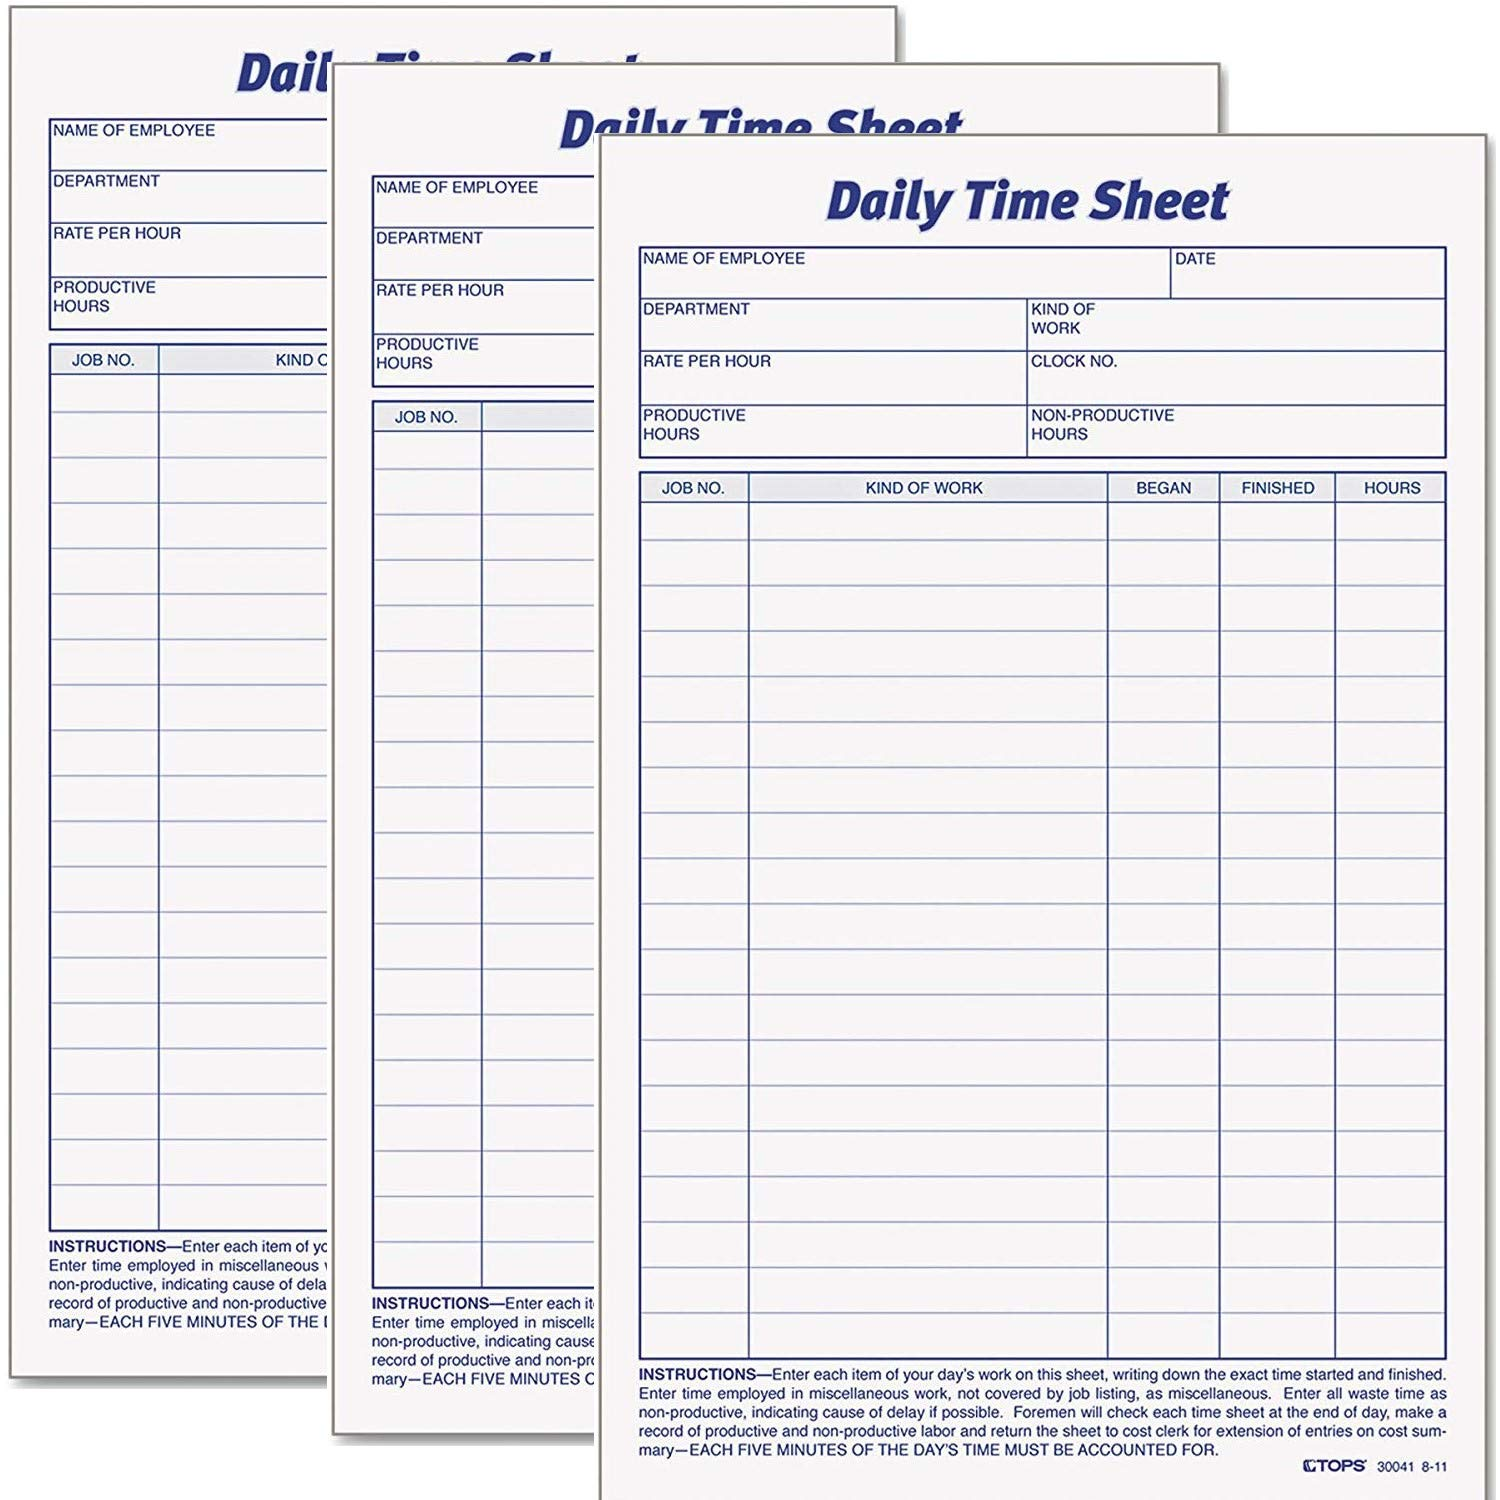 Tops Daily Employee Time And Job Sheet, 6 x 9.5 Inches, 100 Sheets per Pad, 6 Pads/Pack by TOPS